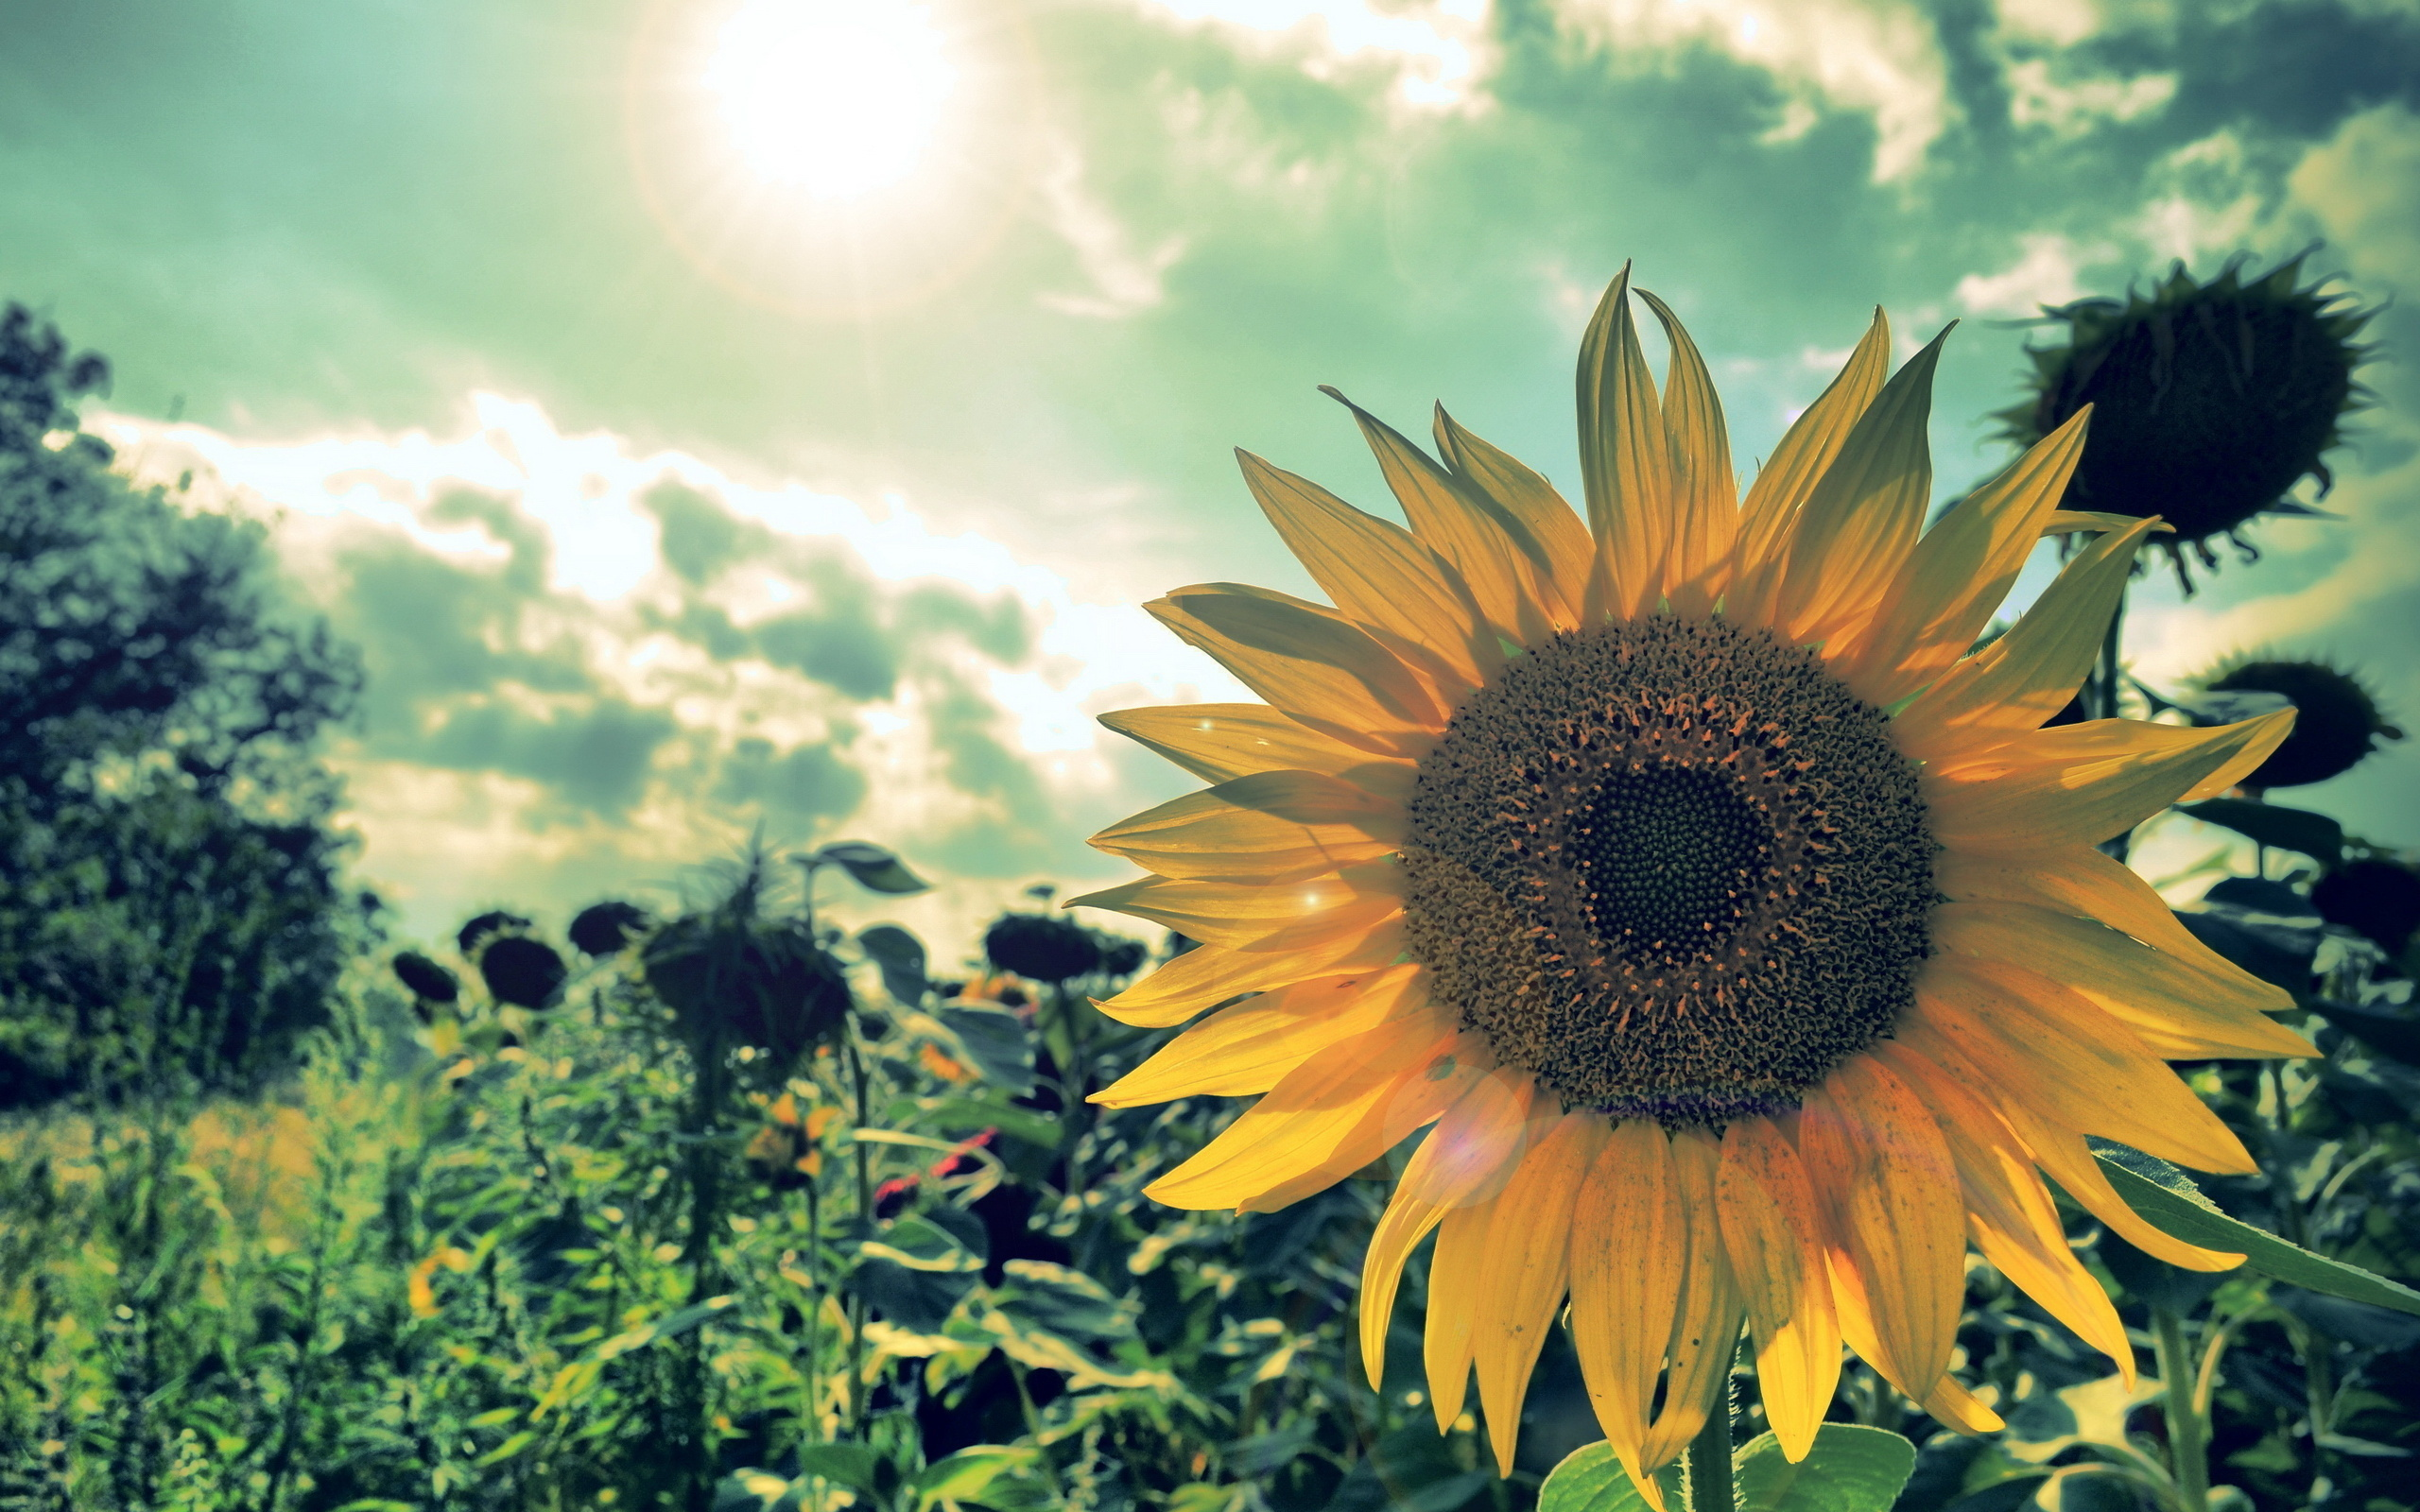 Wallpaper a sunflower field the rays light nature large 2560x1600 2560x1600